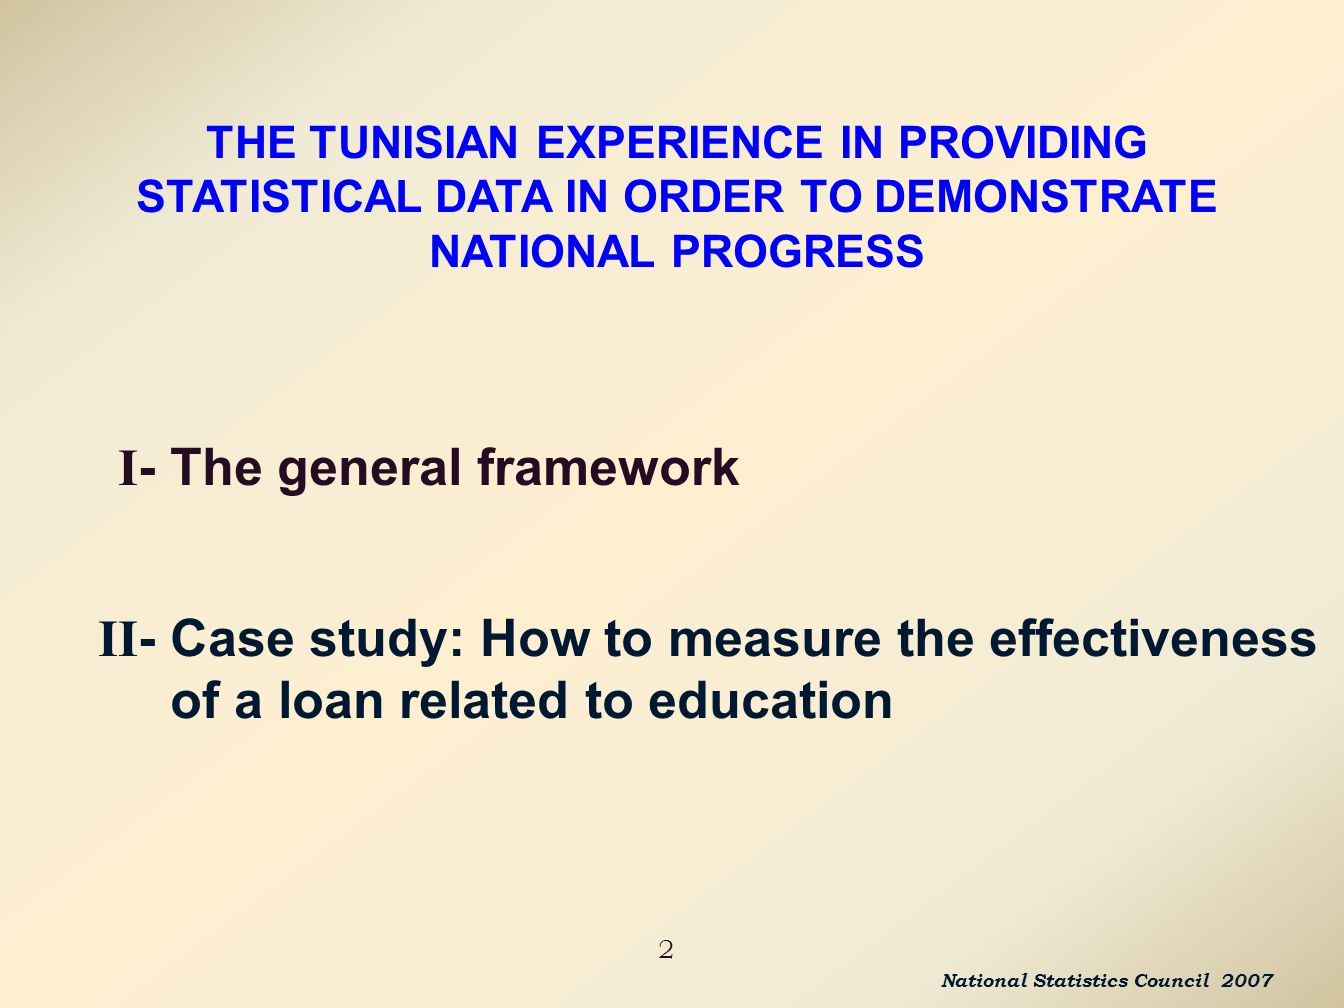 I - The general framework 2 II - Case study: How to measure the effectiveness of a loan related to education THE TUNISIAN EXPERIENCE IN PROVIDING STATISTICAL DATA IN ORDER TO DEMONSTRATE NATIONAL PROGRESS National Statistics Council 2007